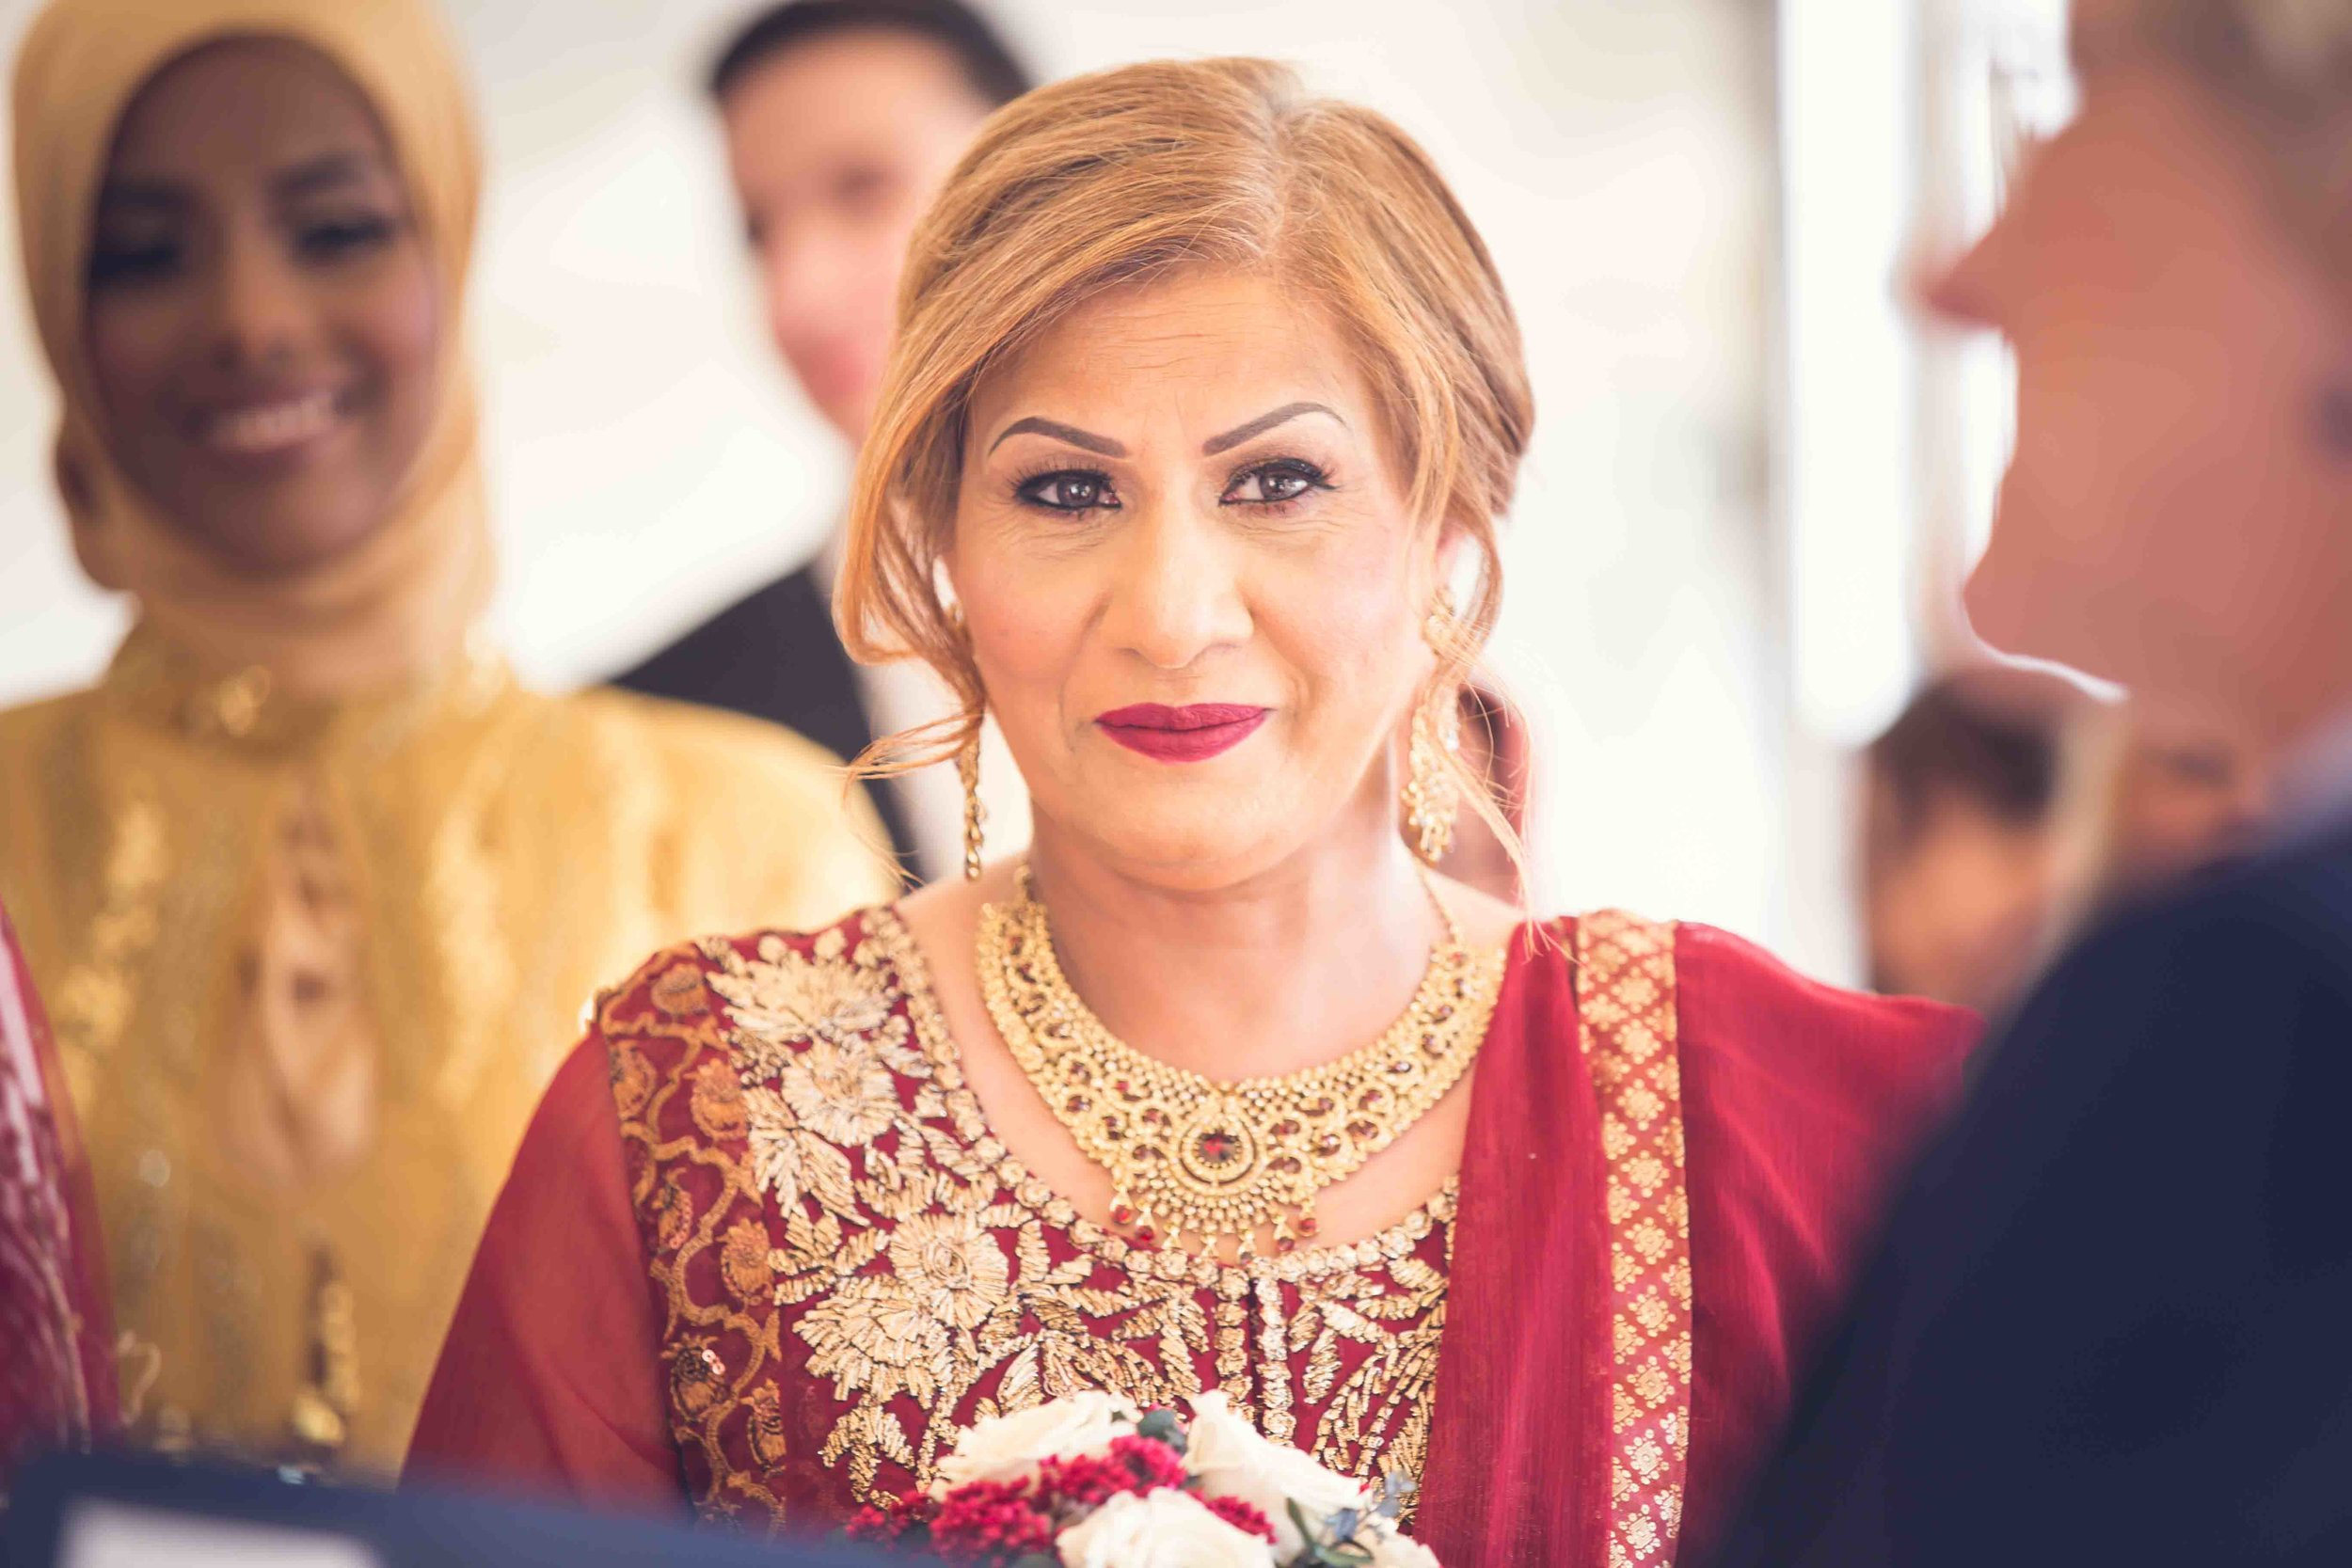 Opu Sultan Photography Asian wedding photography scotland edinburgh glasgow manchester birmingham london-190.jpg